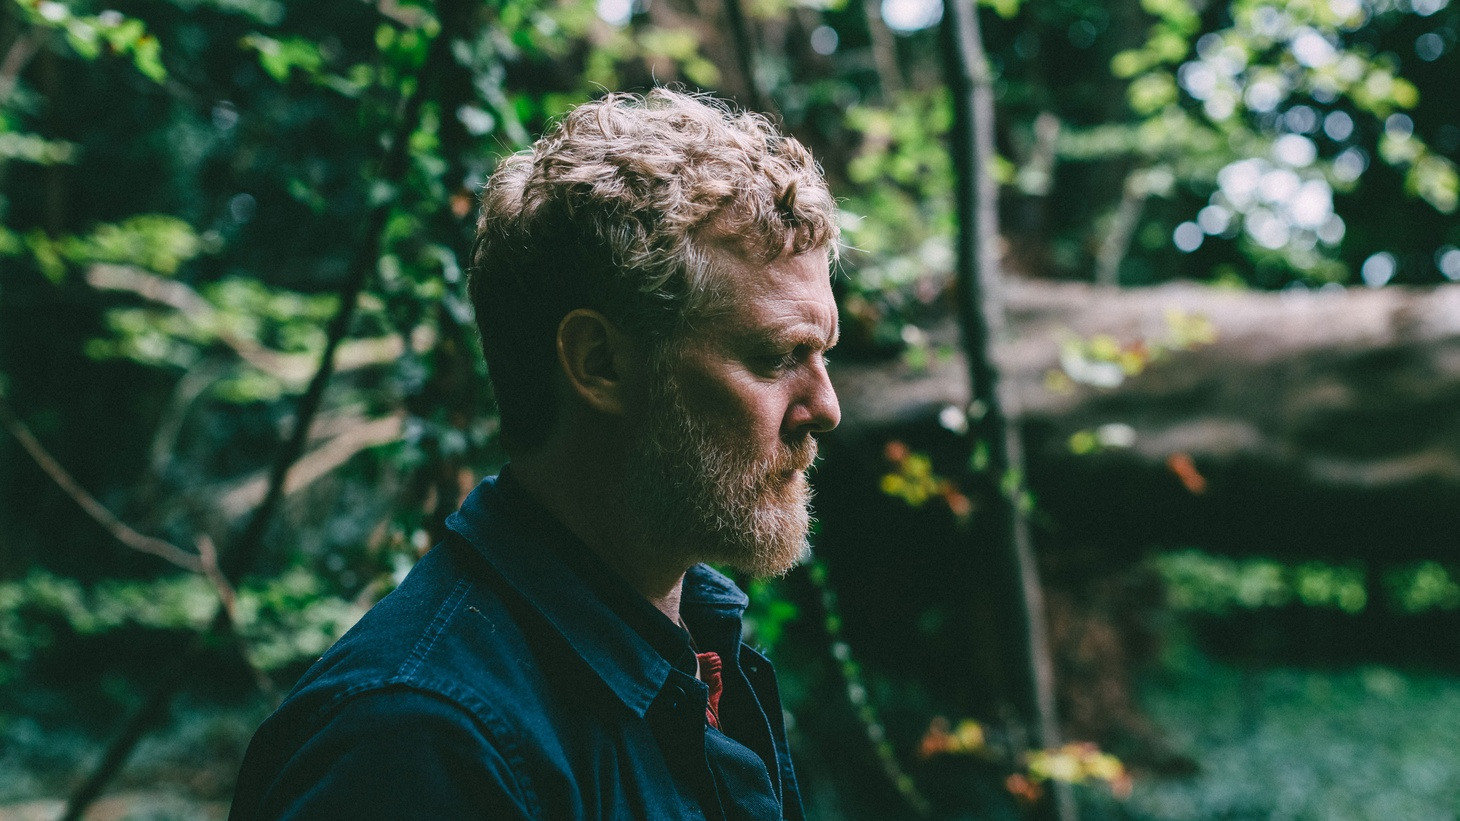 Founding member of The Frames and star of the film Once - Glen Hansard produced his third solo album on his own. He's a master at creating music that feels complete whether the tracks are solo and acoustic or accompanied by an orchestra.